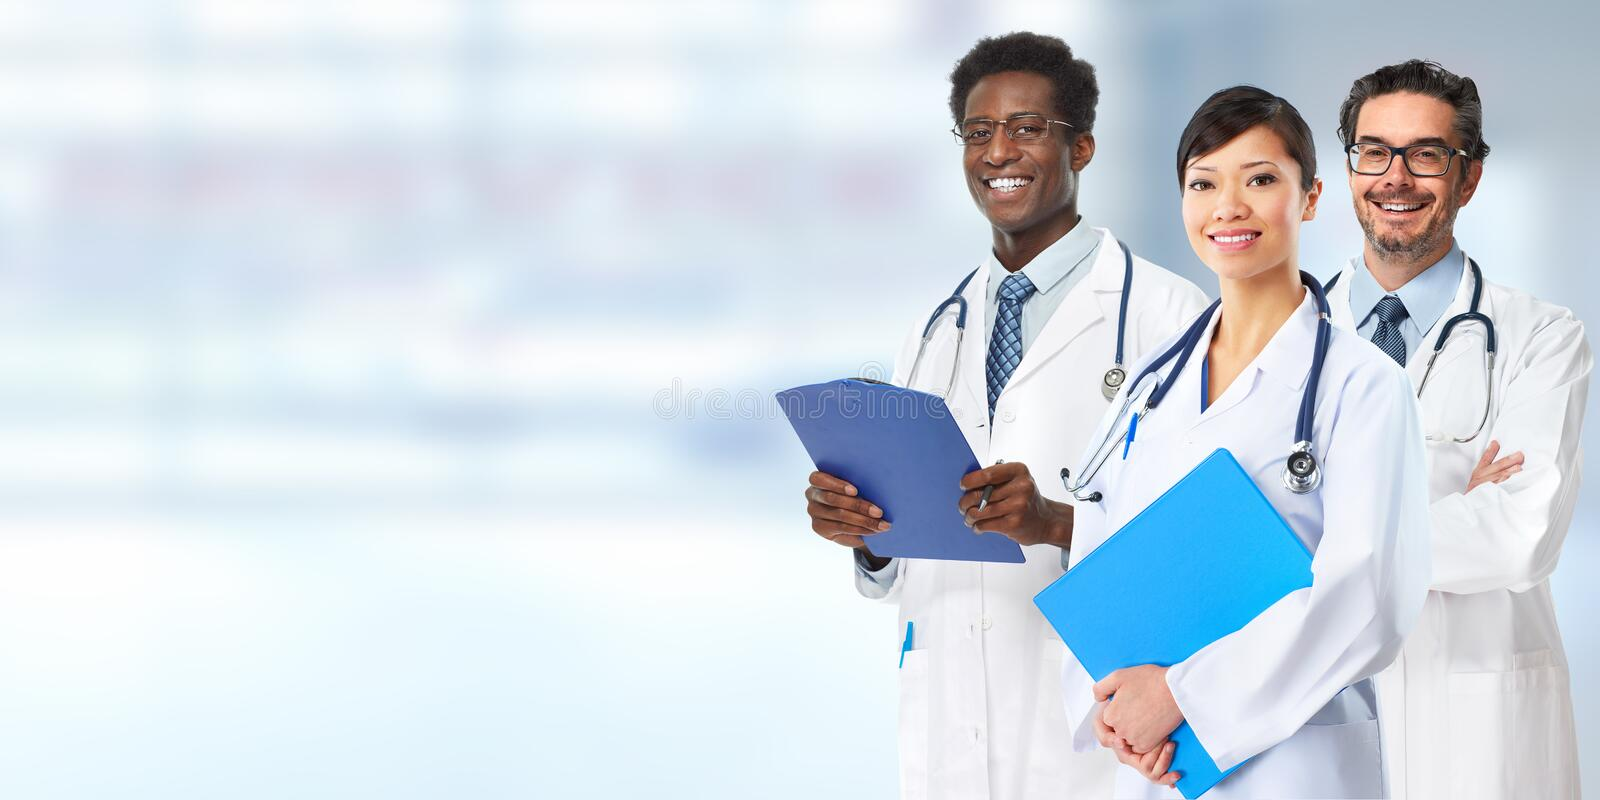 Doctors group. royalty free stock images